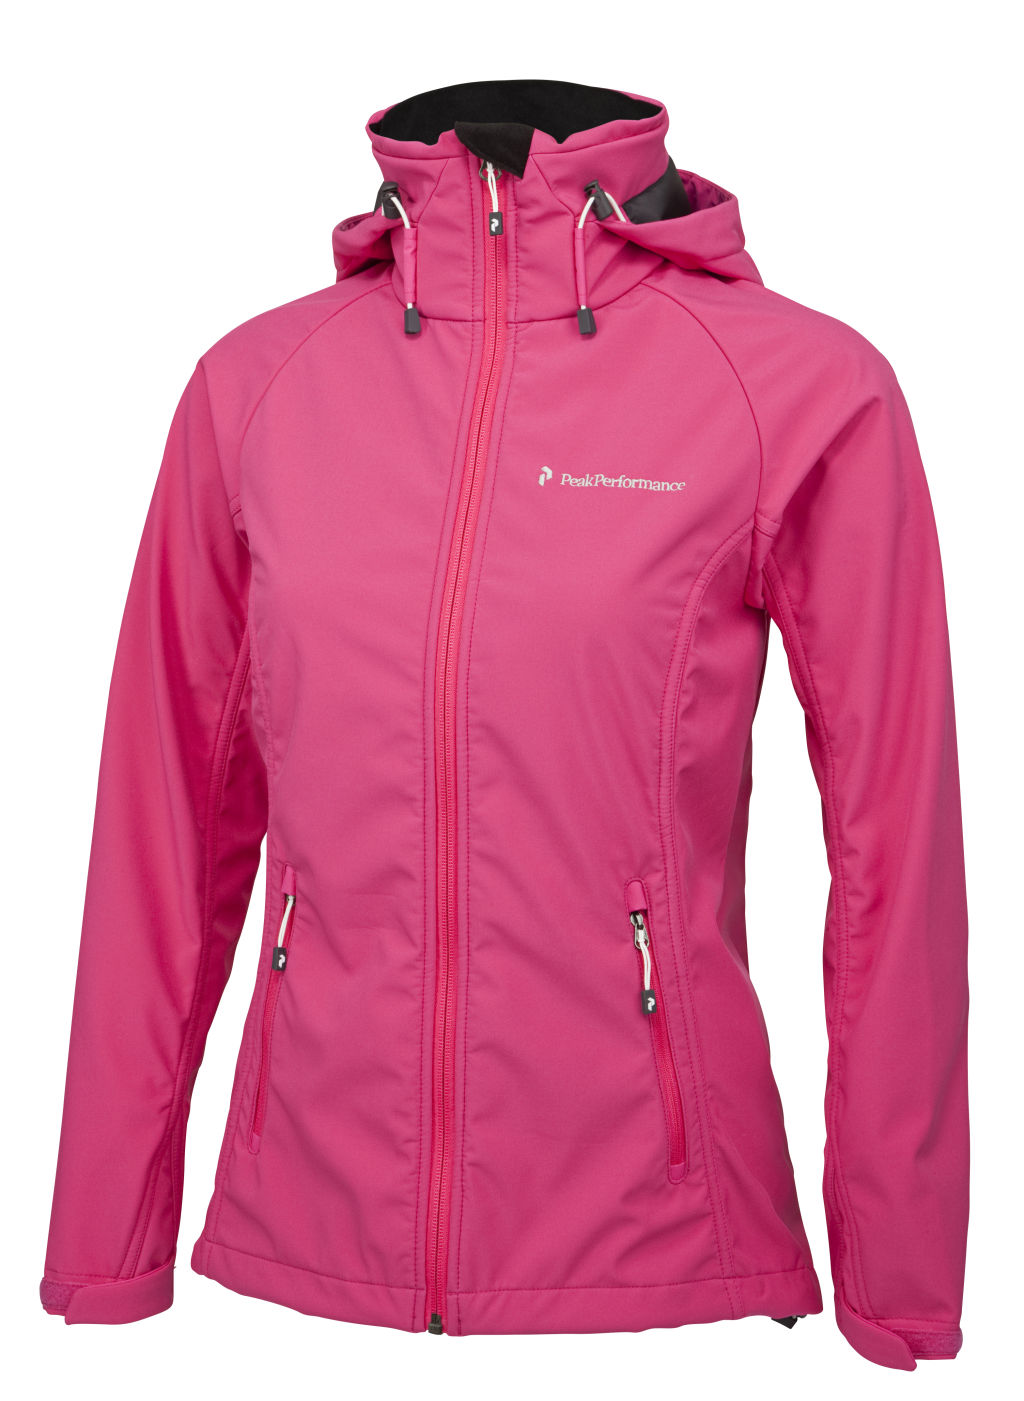 Peak Performance Fi Mary Jacket W - Naisten softshelltakki - Intersport ae5a12efe5